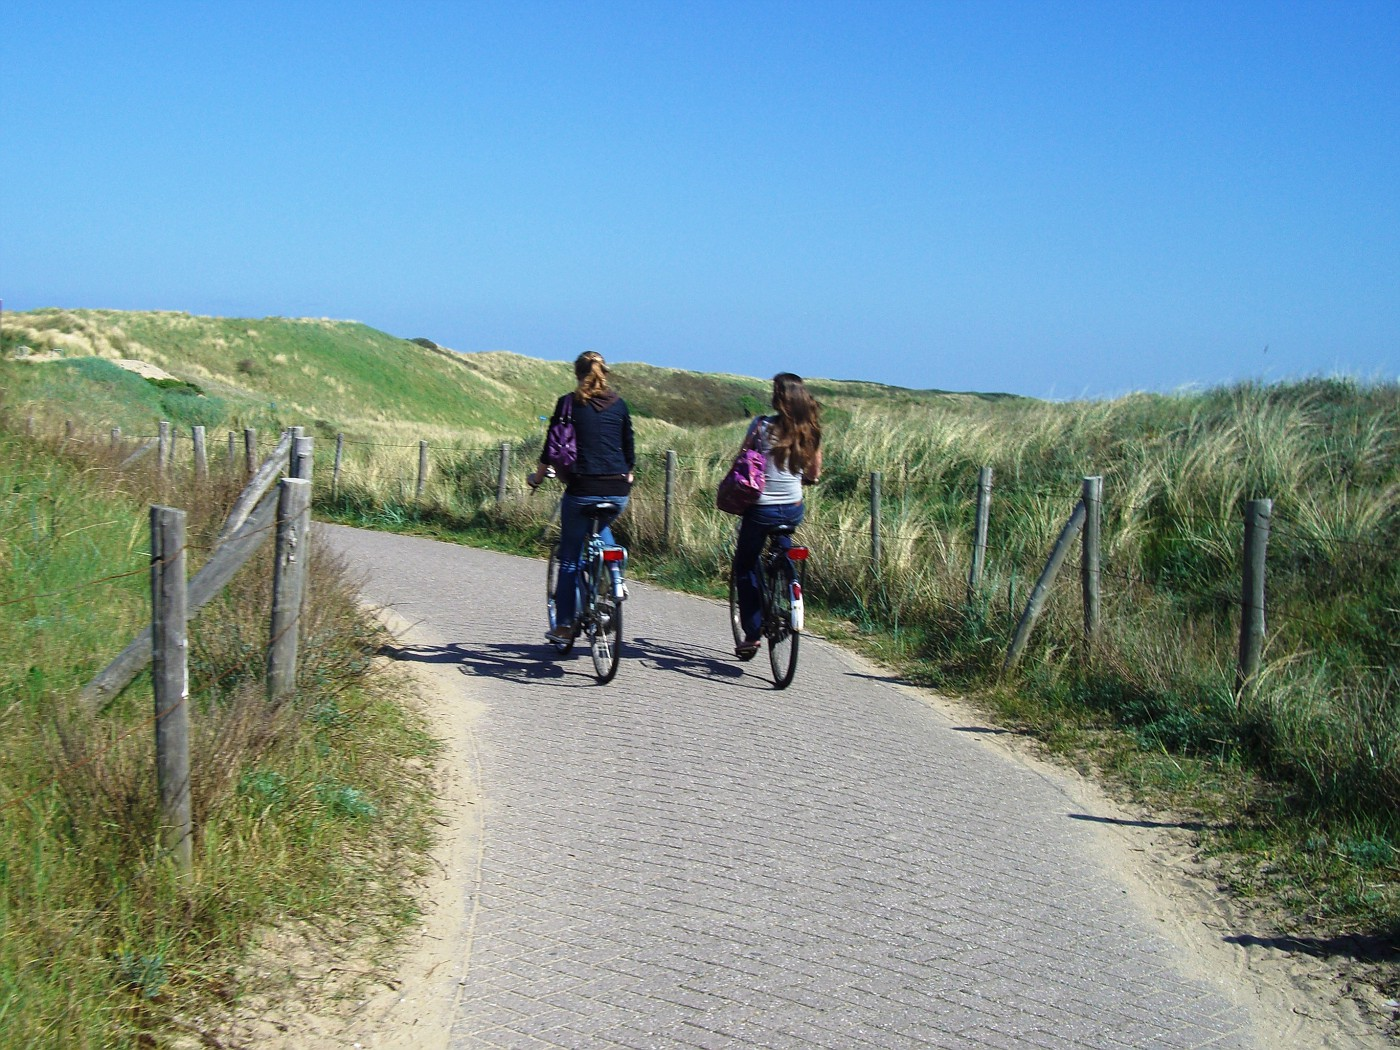 Cycle track to Kennemerland